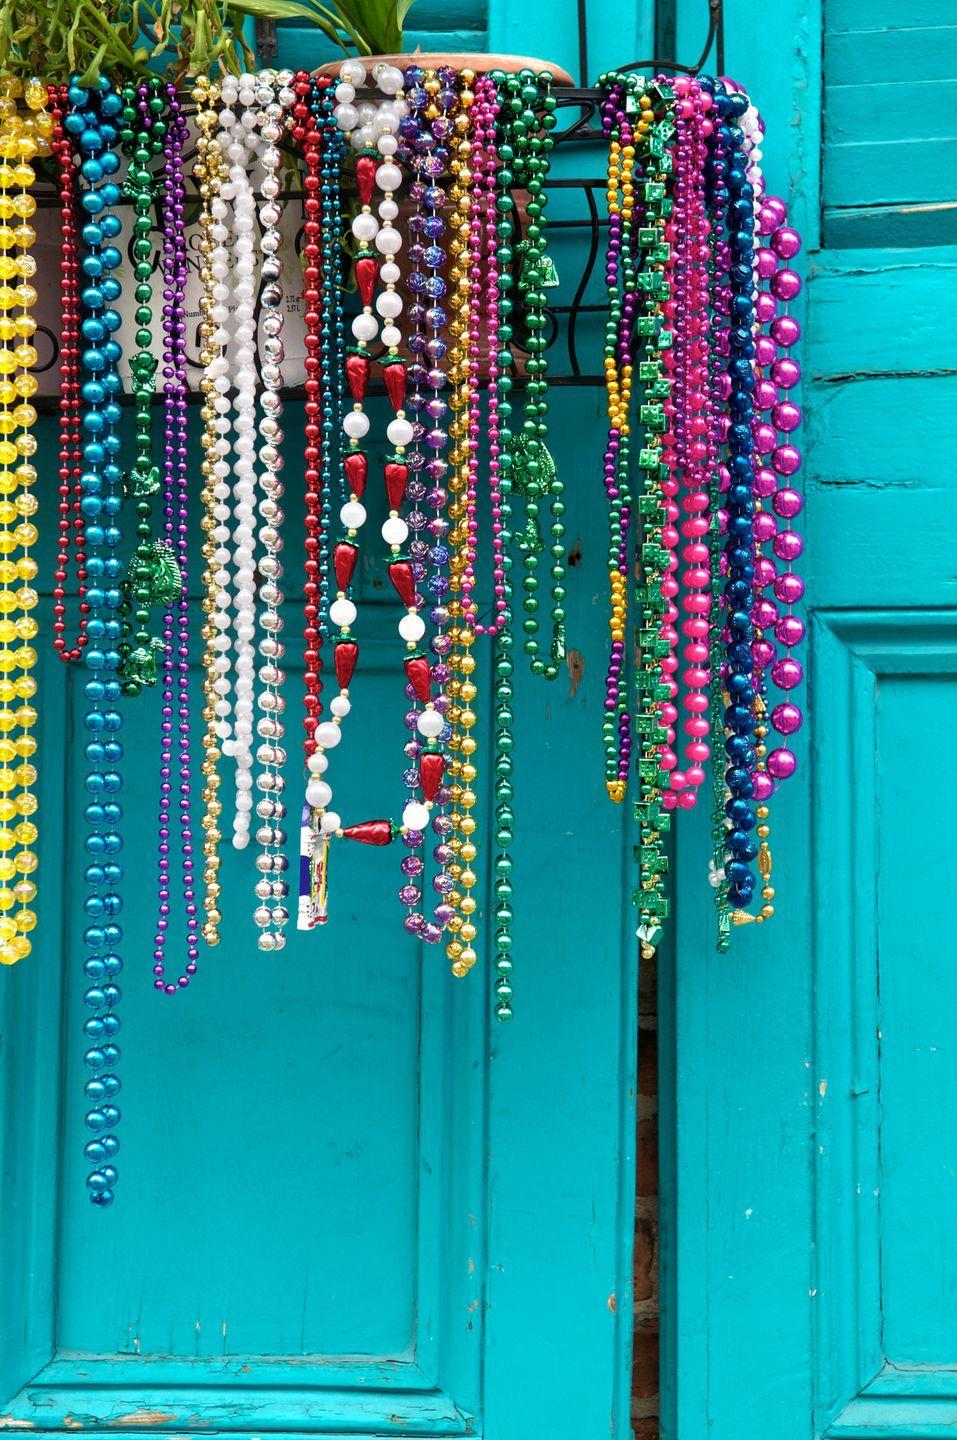 """<p>Throws are the baubles that krewes toss to the crowd from their parade floats (and in more recent years, that those partying on the French Quarter balconies gift to passersby). They include doubloons, the <a href=""""https://www.whereyat.com/the-wild-world-of-doubloon-collecting"""" rel=""""nofollow noopener"""" target=""""_blank"""" data-ylk=""""slk:collectible coins"""" class=""""link rapid-noclick-resp"""">collectible coins</a> krewes give out, and those infamous plastic beads. According to <em><a href=""""https://time.com/5144265/mardi-gras-traditions-history/"""" rel=""""nofollow noopener"""" target=""""_blank"""" data-ylk=""""slk:Time"""" class=""""link rapid-noclick-resp"""">Time</a></em>, these traditions likely began in the late 1800s, when carnival kings would gift their """"subjects"""" with the trinkets.</p>"""